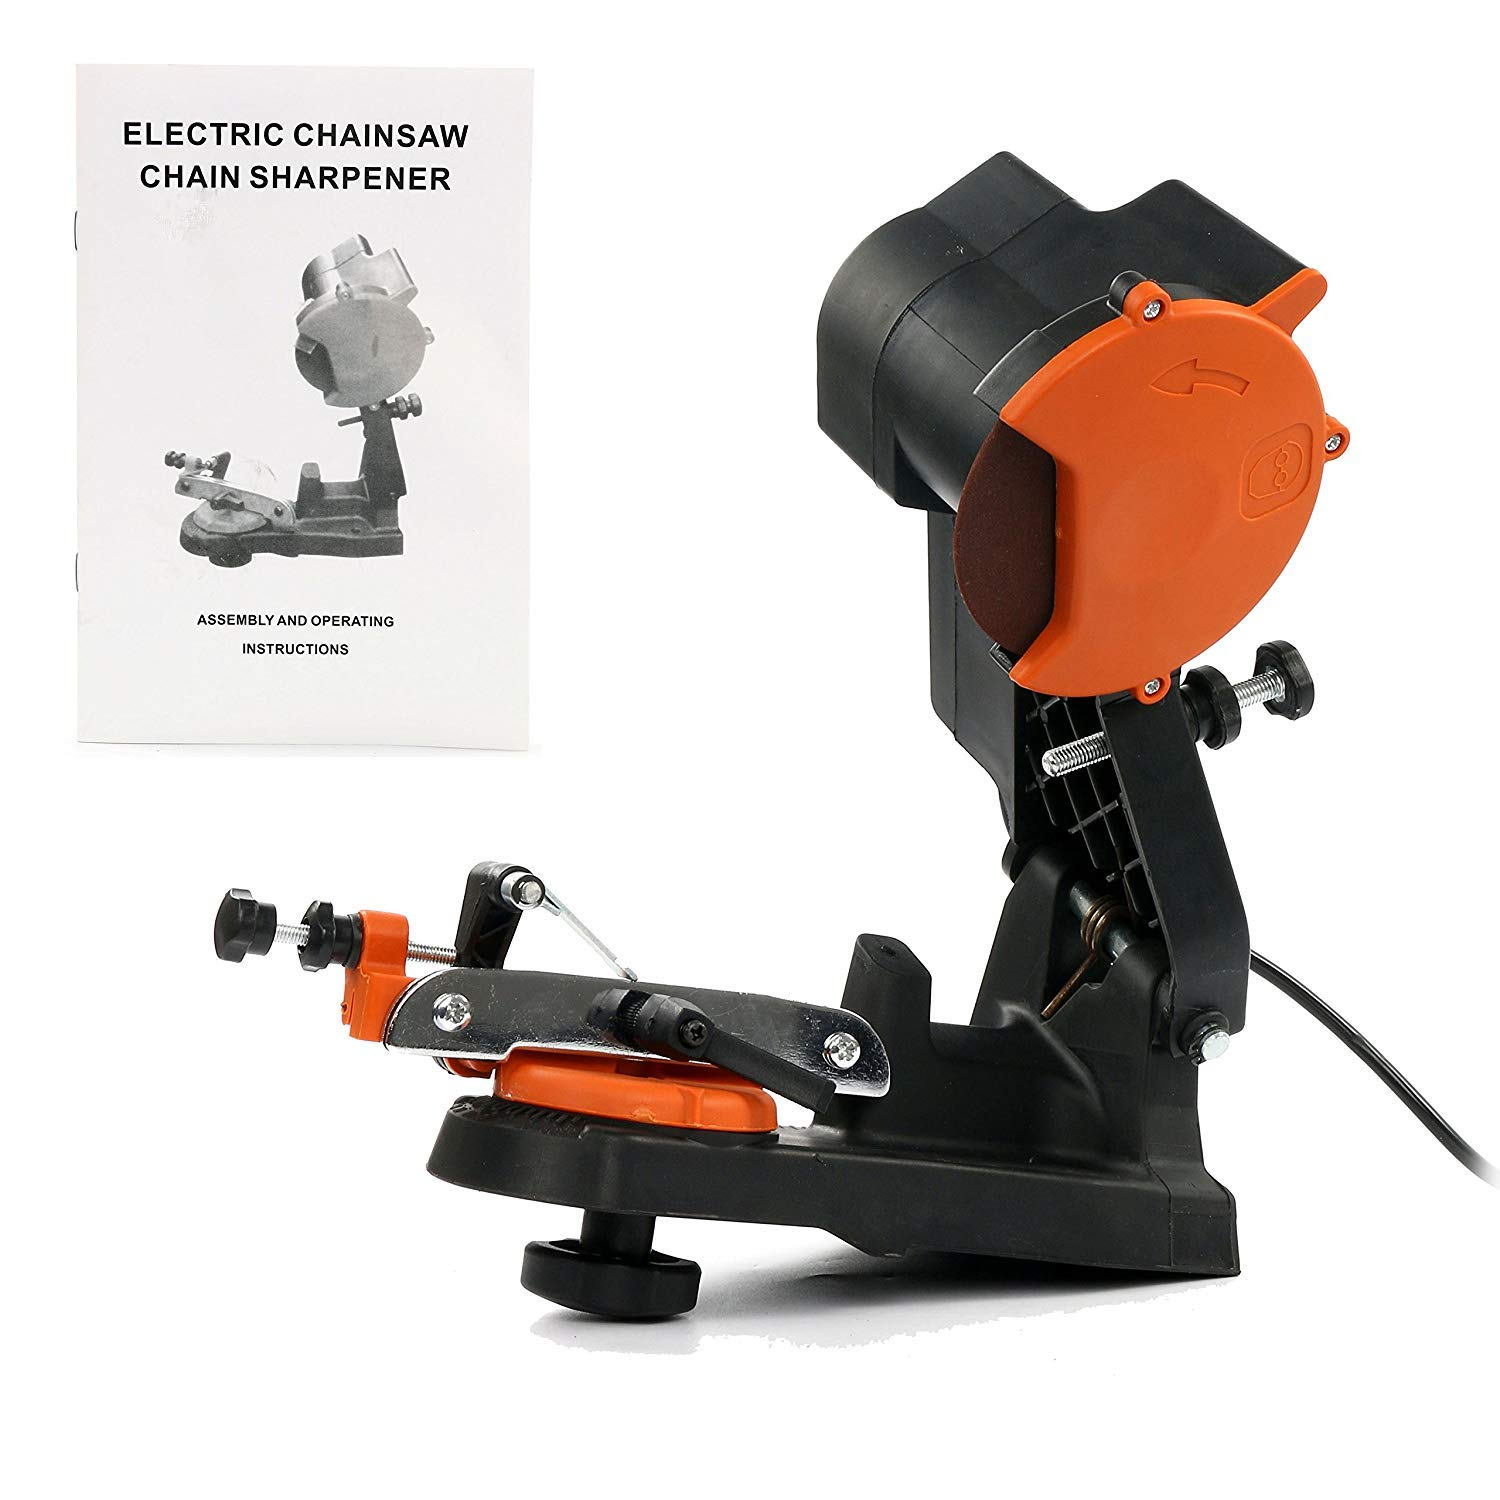 Yaetek Electric Chainsaw Sharpener Chain Saw Grinder 4800RPM Bench Wall or Vise Mount Tool by YaeTek